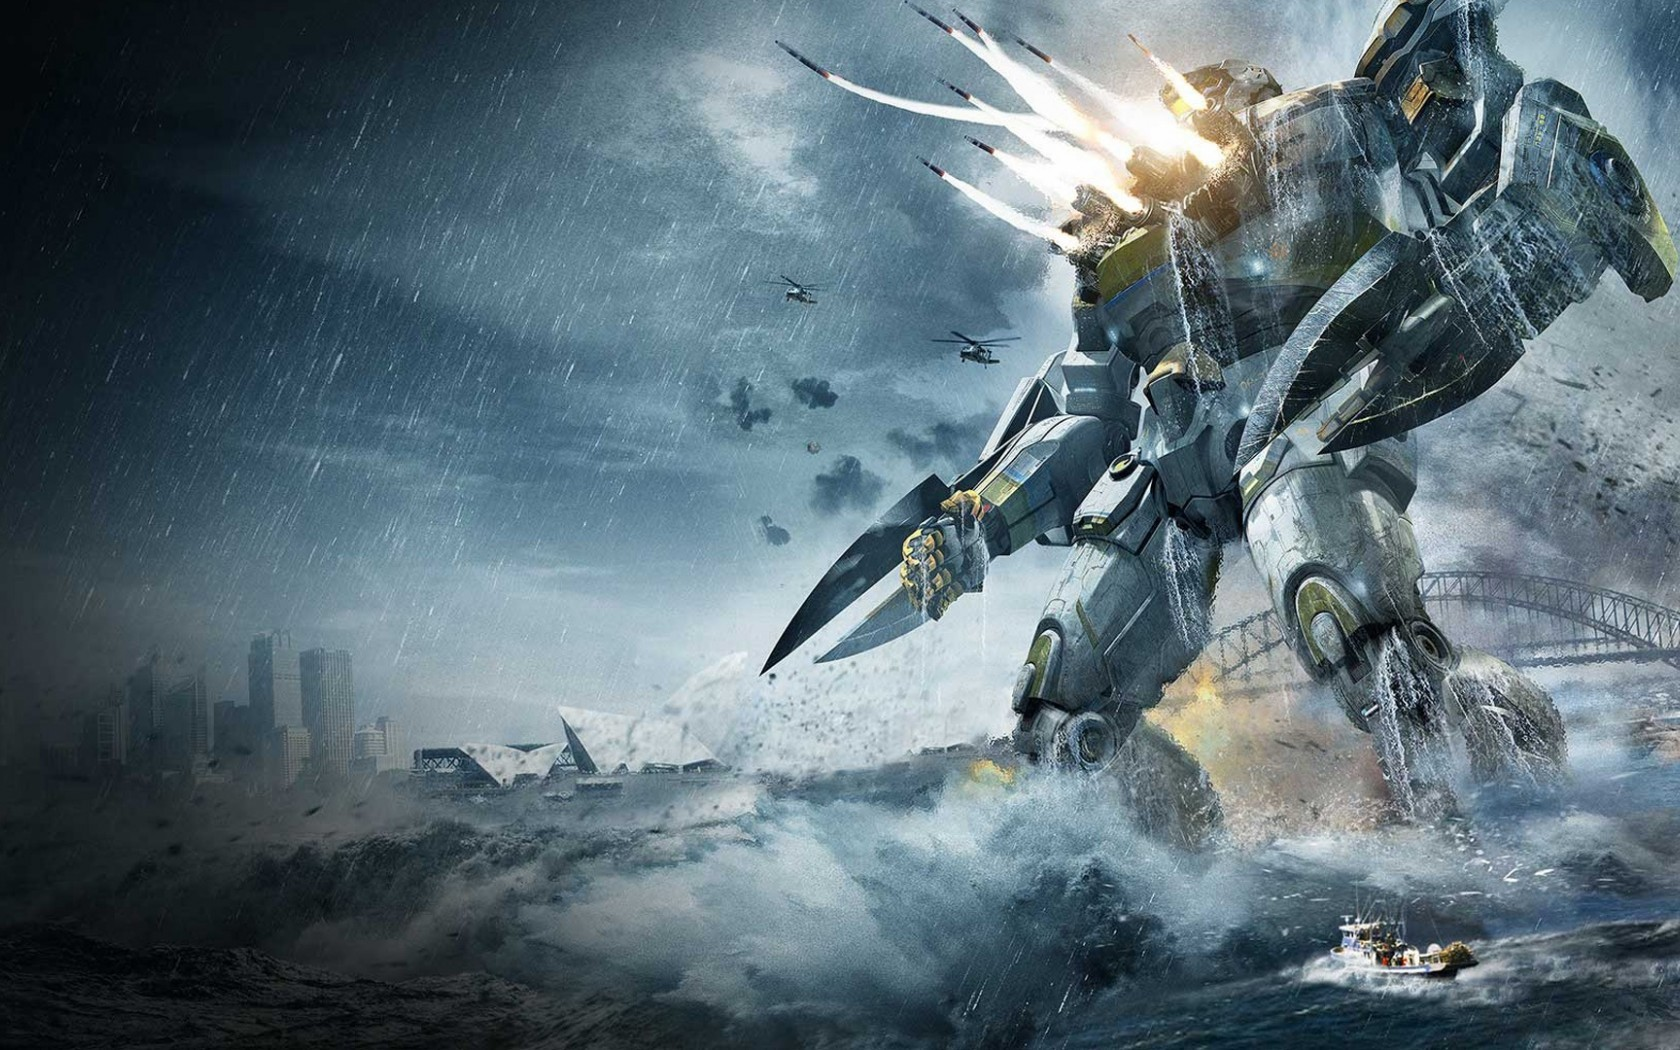 18066 download wallpaper Cinema, Pacific Rim screensavers and pictures for free